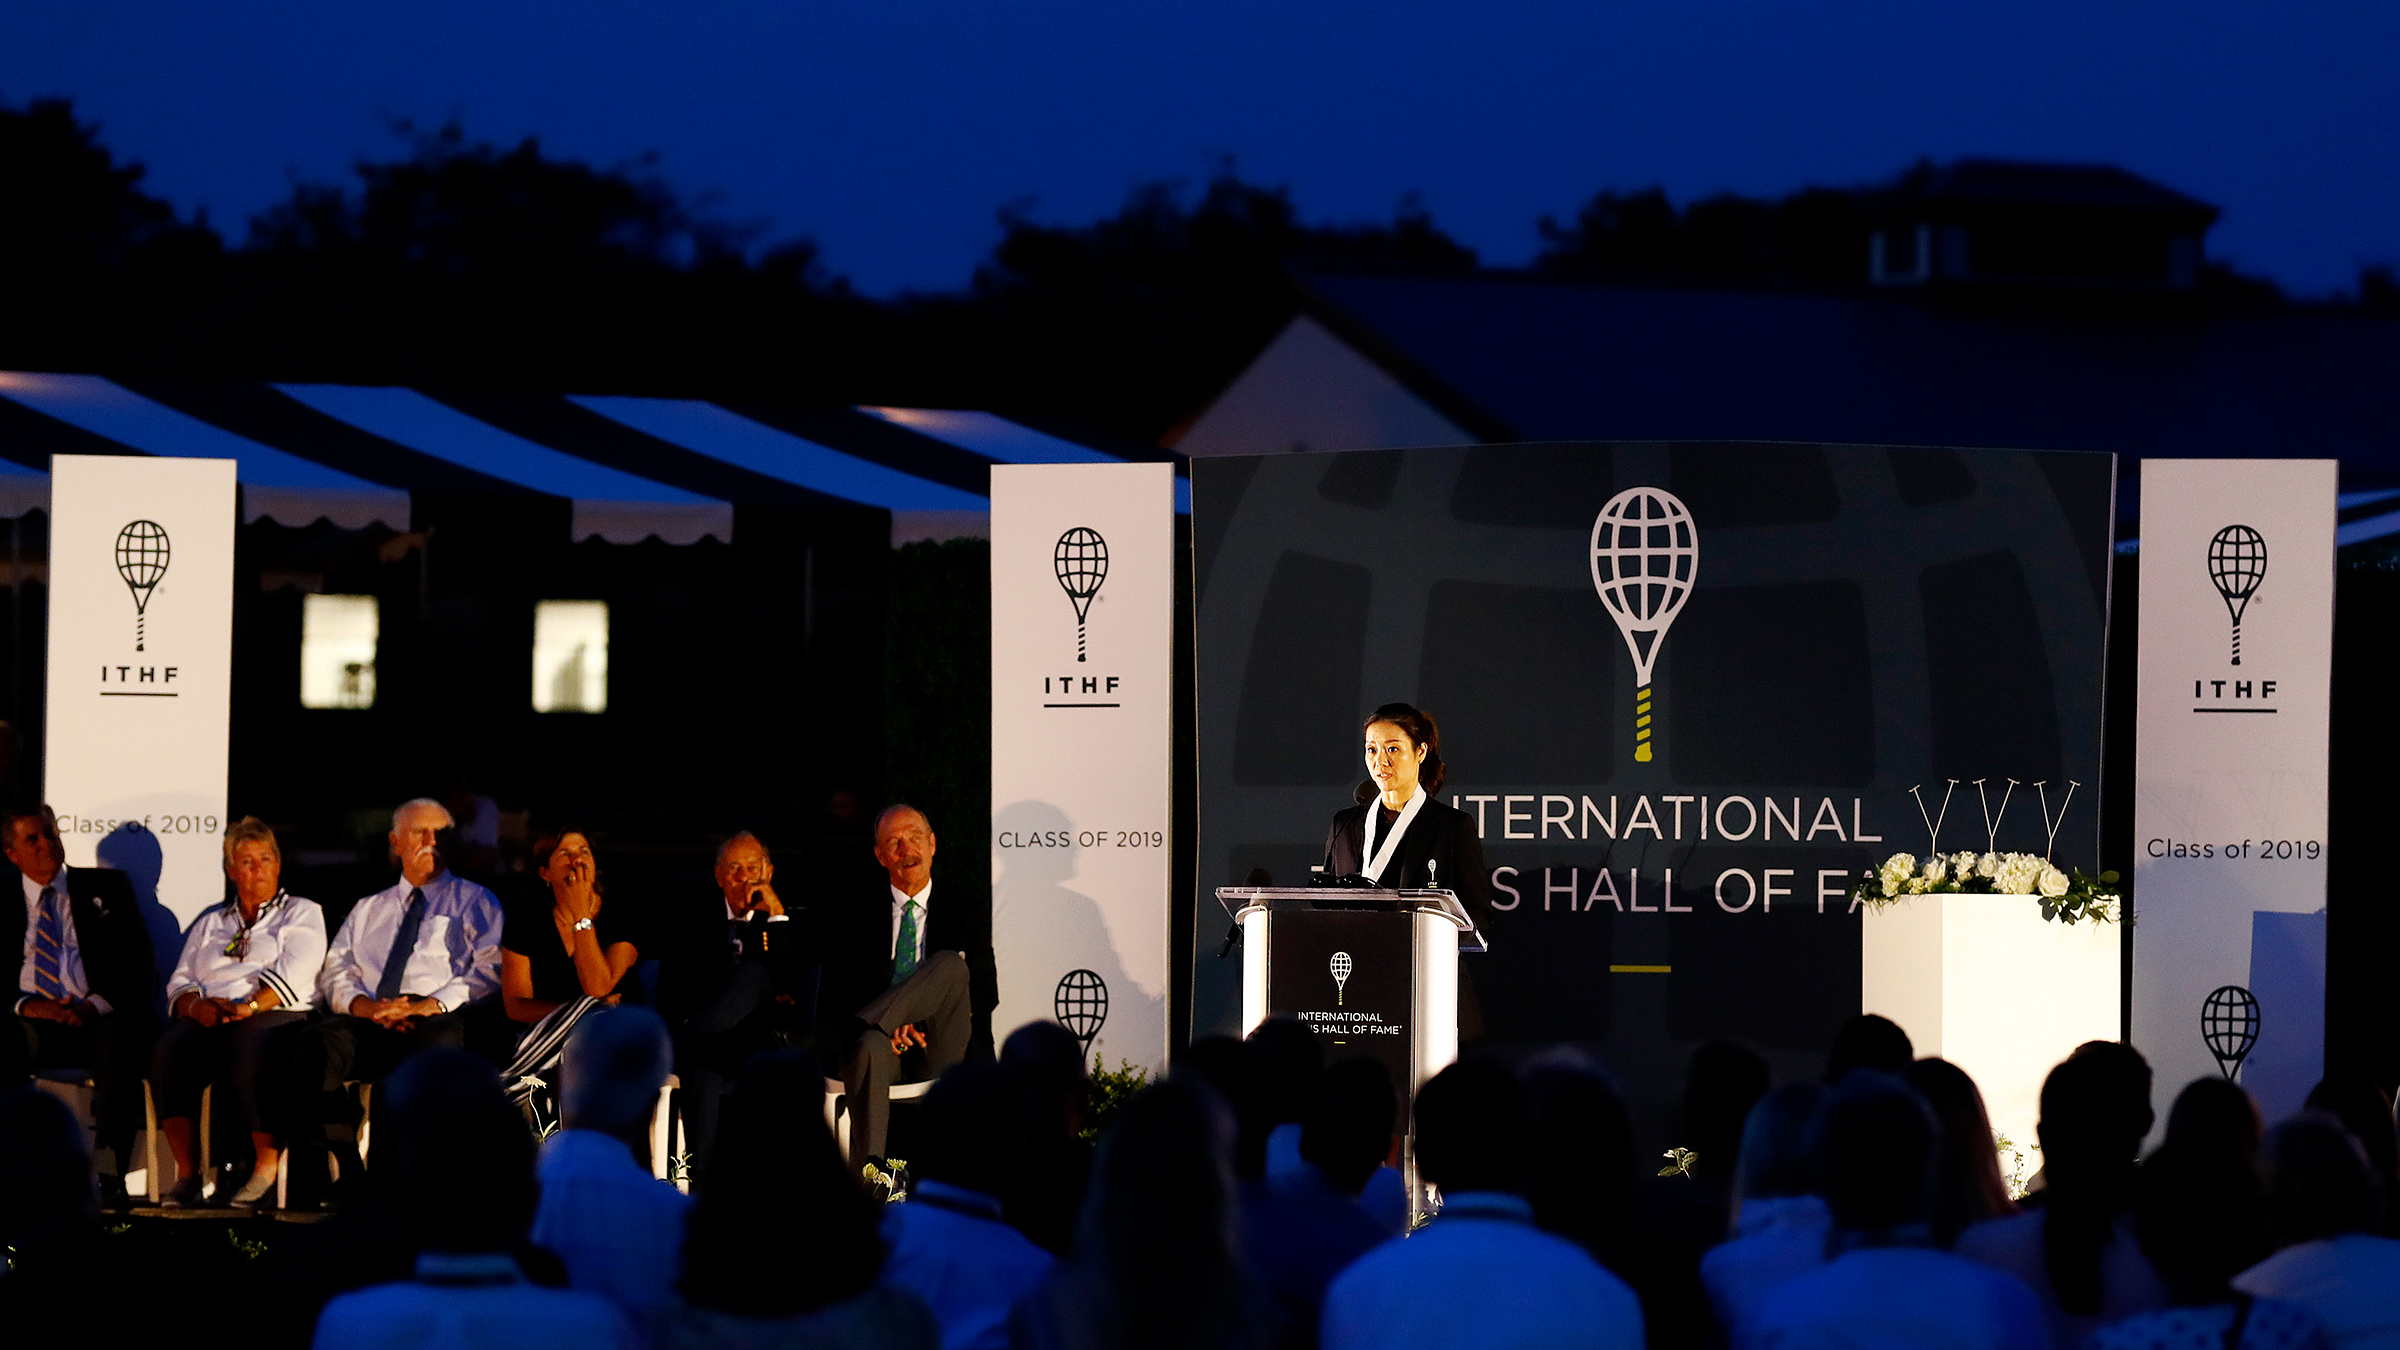 Li Na gives her speech after being inducted into the International Tennis Hall of Fame in Newport, Rhode Island on July 20, 2019.